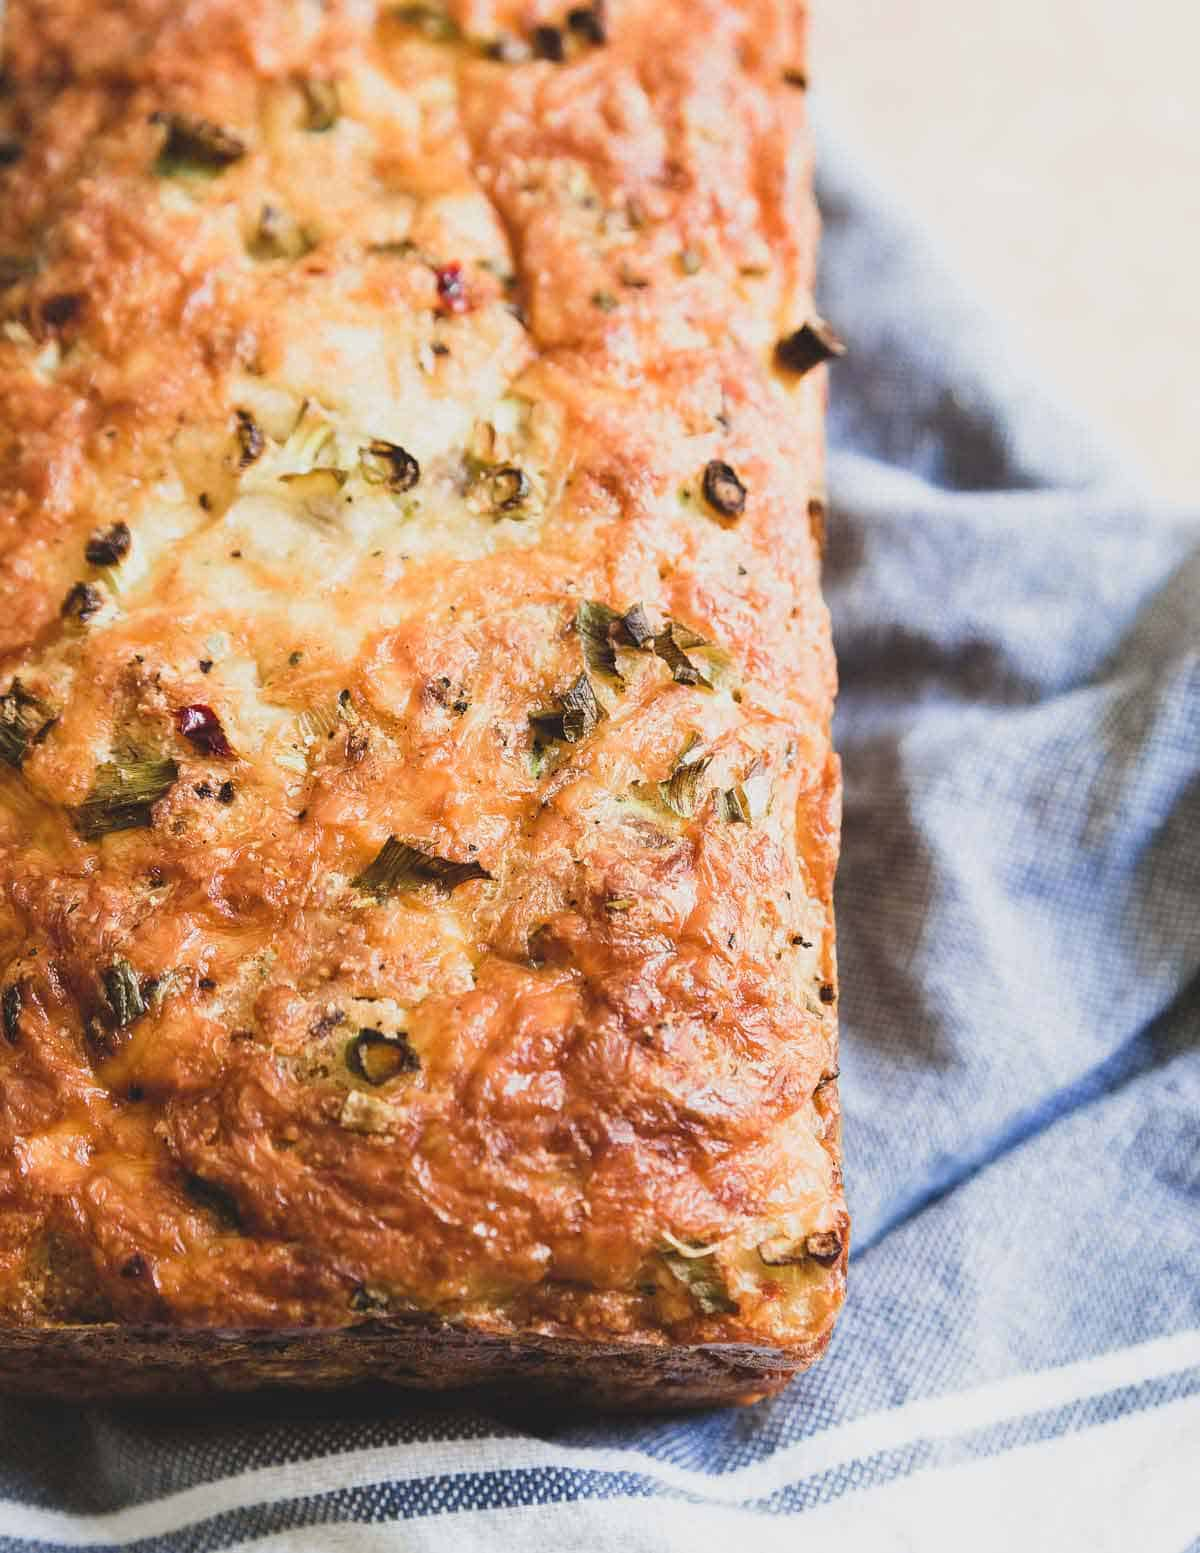 This cheesy zucchini bread is hearty, savory and filled with pepper jack cheese. The perfect way to use up fresh summer zucchini!